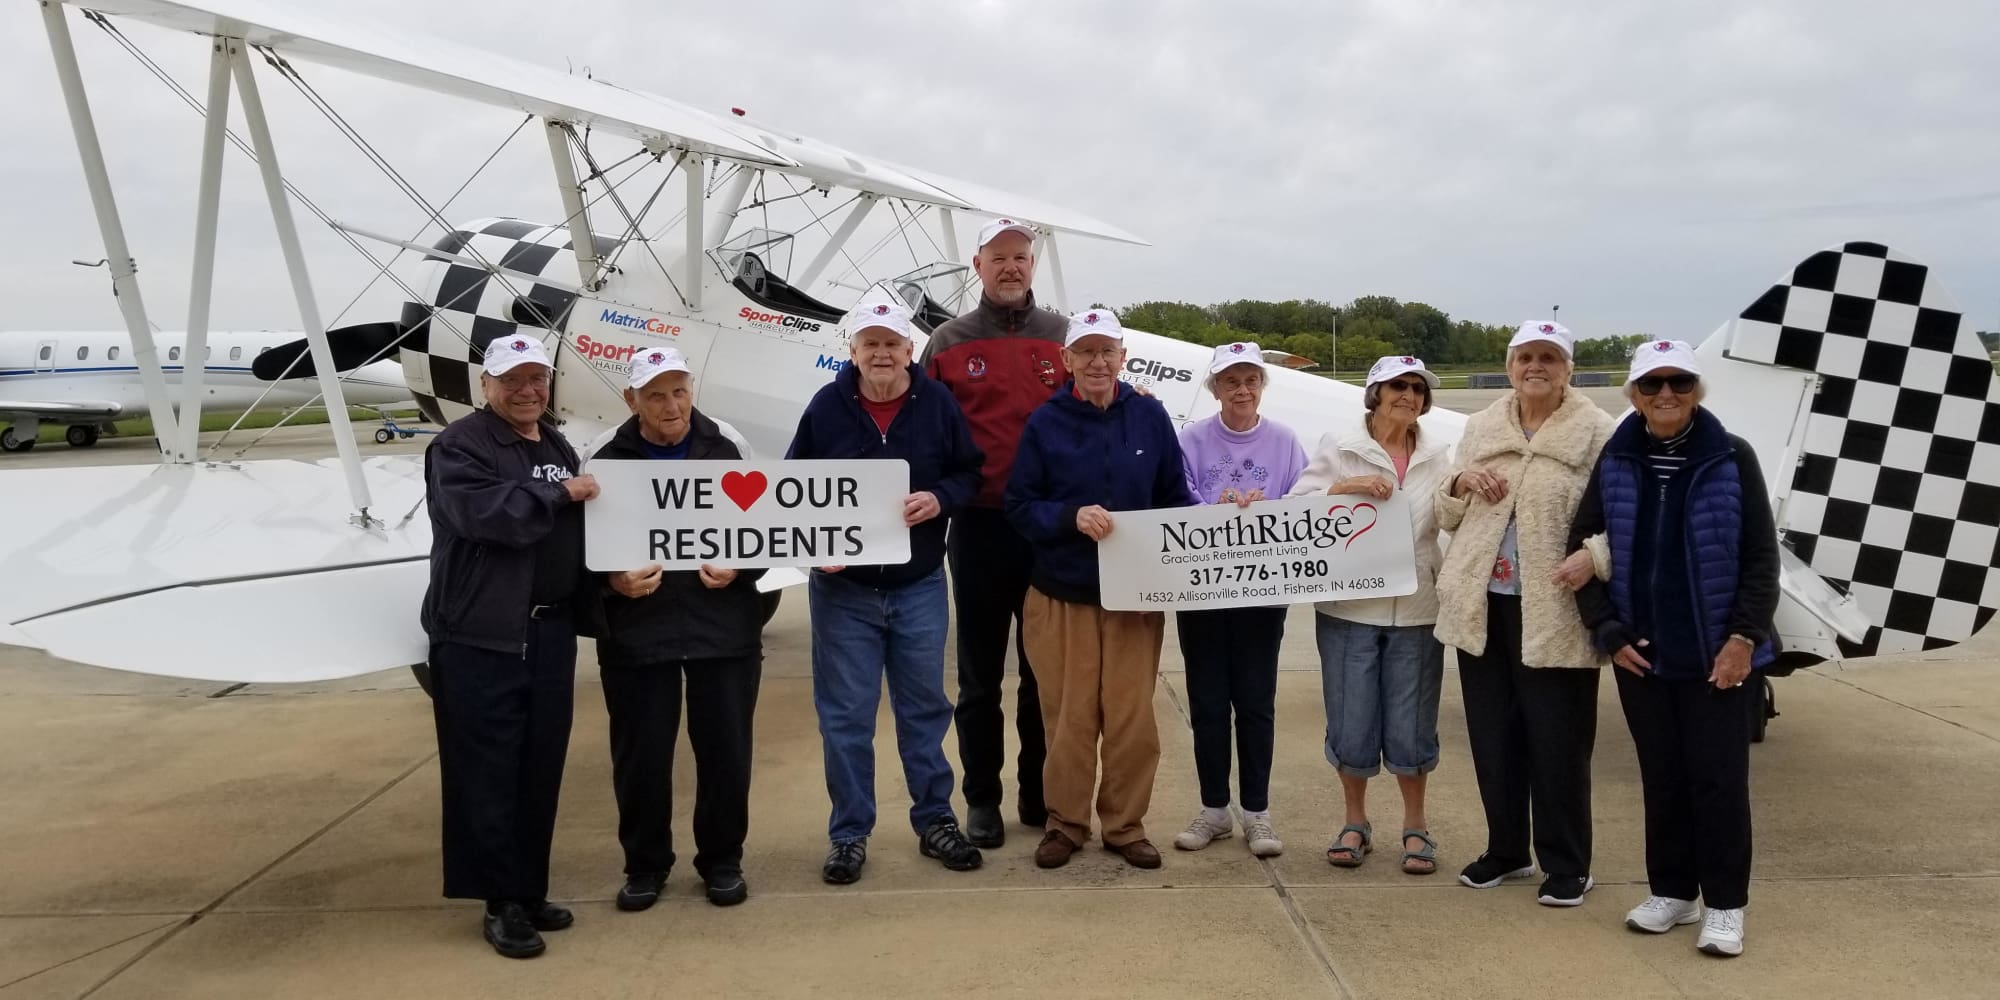 Residents from Northridge Gracious Retirement Living in Fishers, Indiana holding signs in front of a plane